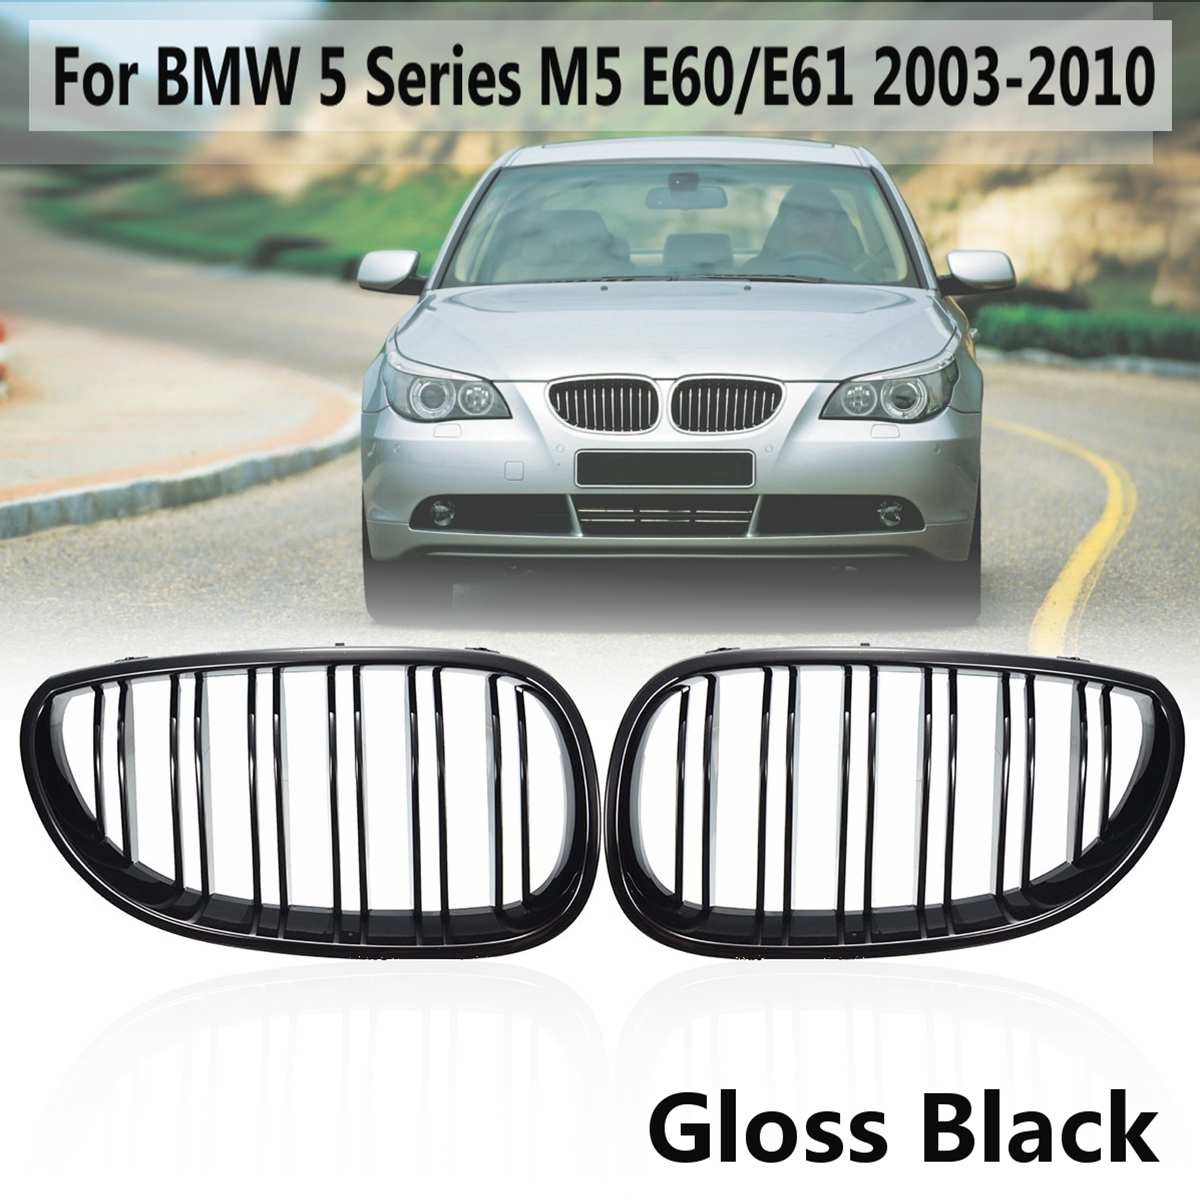 Auto Voorkant Sport Grill Nier Roosters Grill Voor BMW 5 Serie M5 E60/E61 2003 2004 2005 2006 2007 2008 2009 2010 Gloss Black